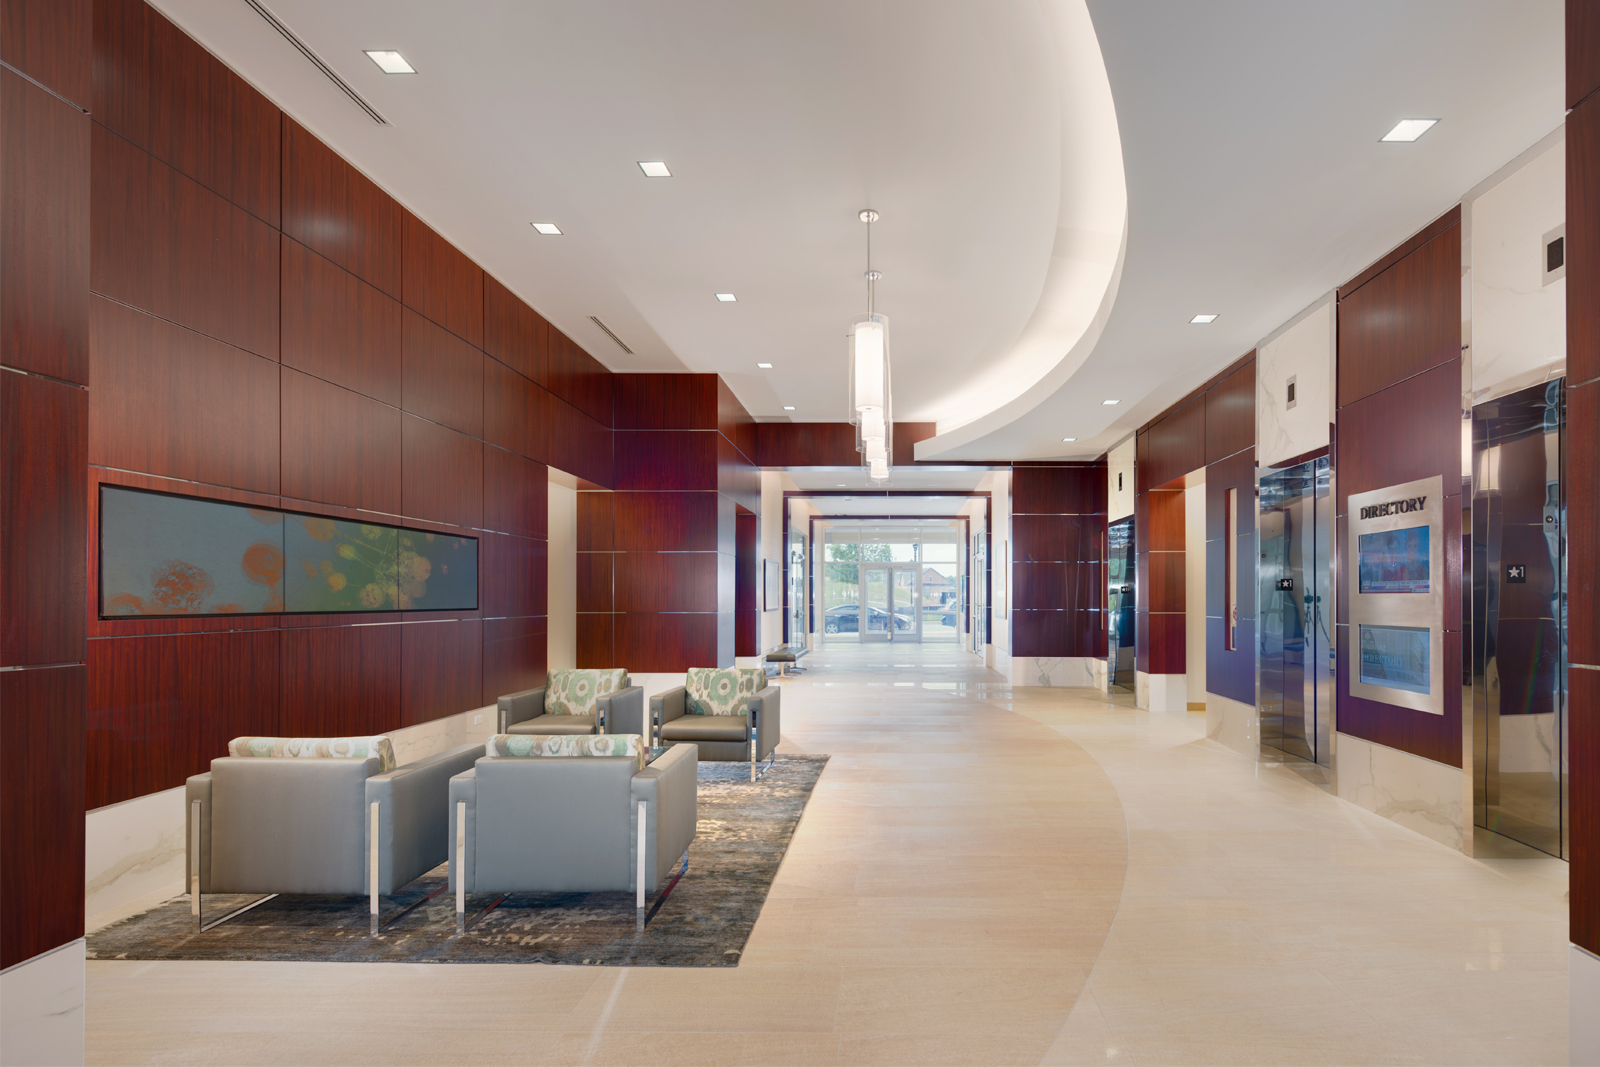 Large Images Of Office Building Lobbies